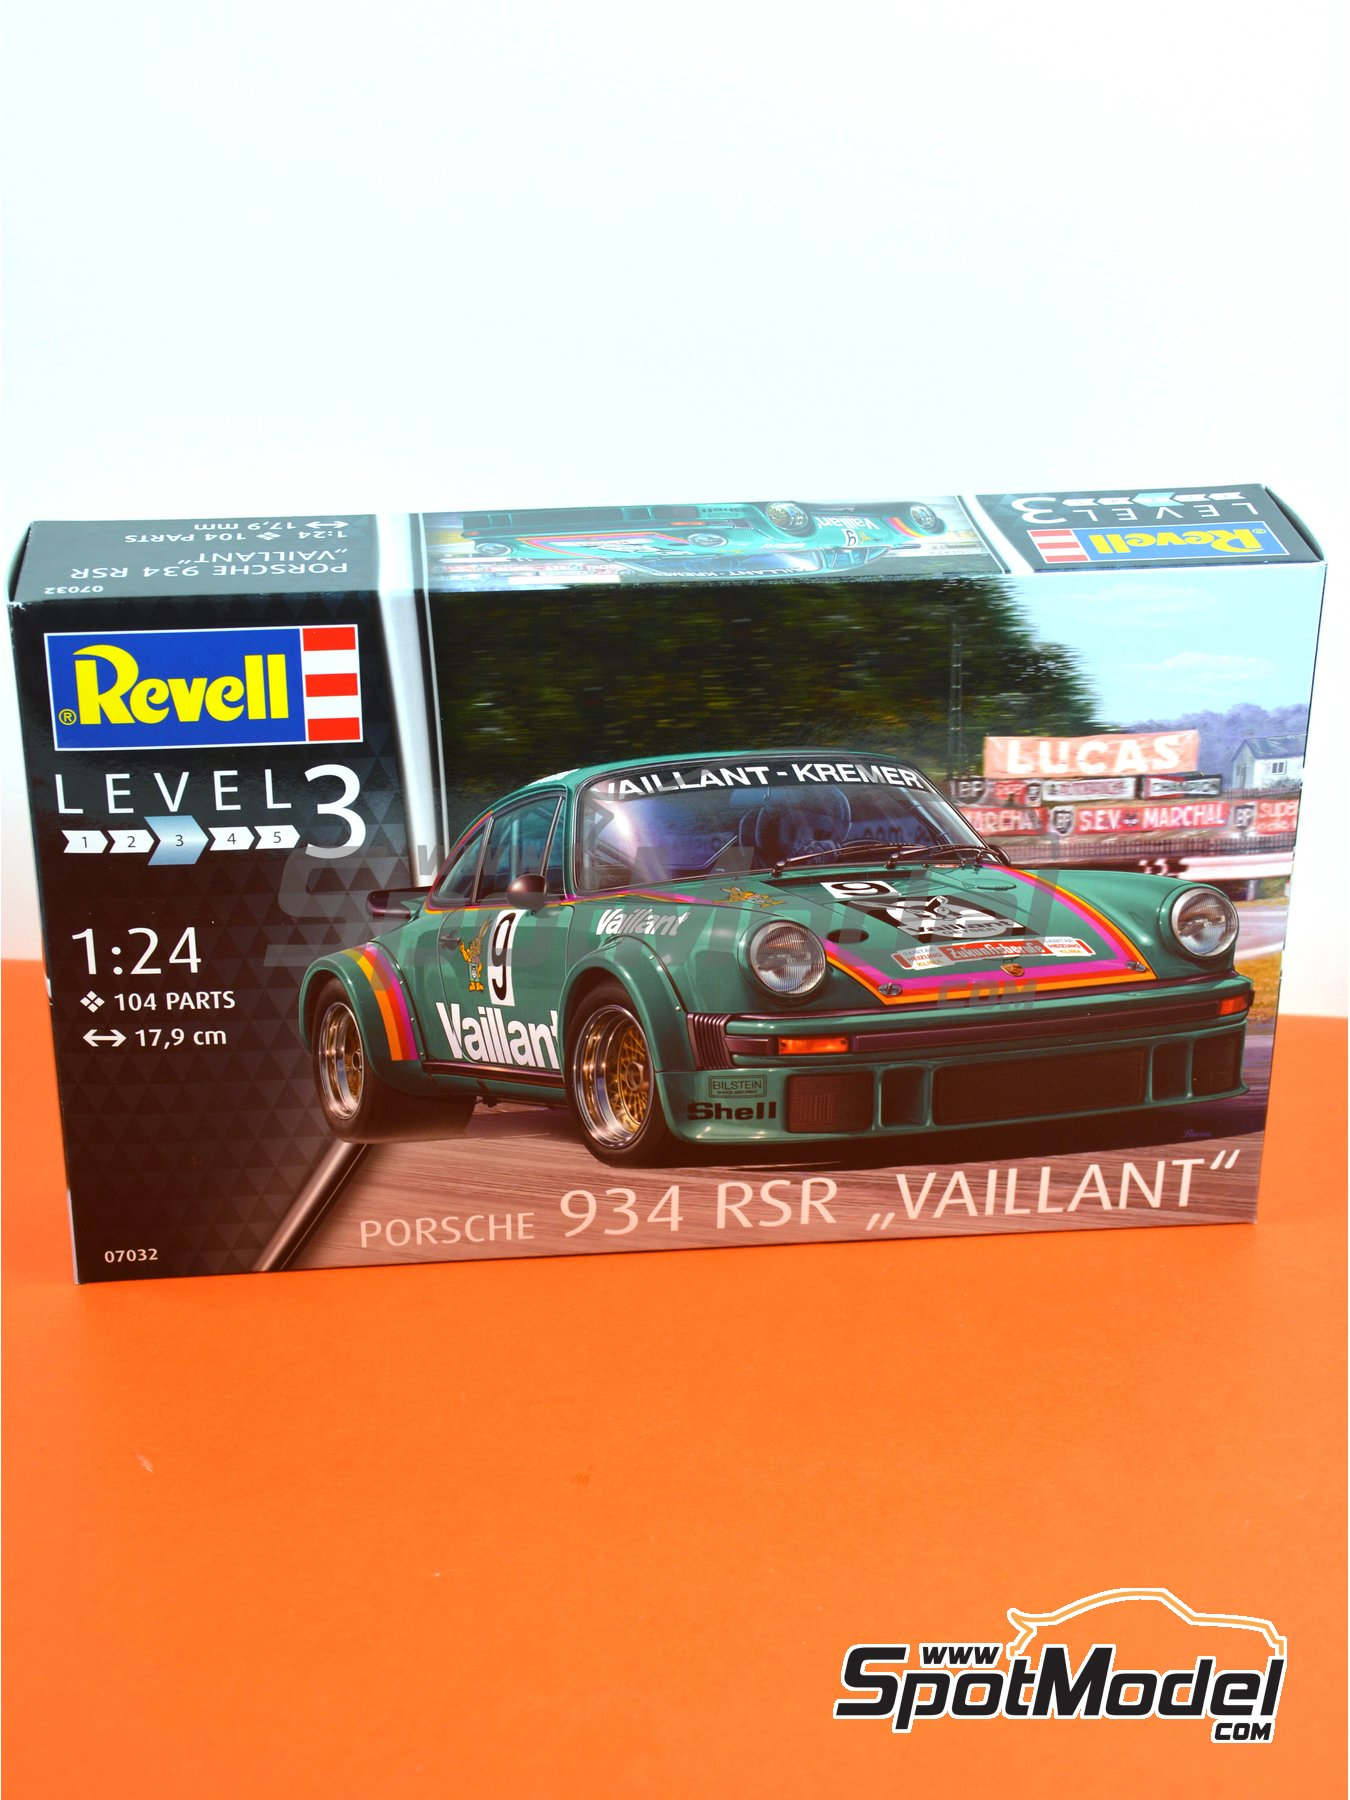 Porsche 934 Turbo RSR Group 4 Vaillant Kremer - European GT Championship | Model car kit in 1/24 scale manufactured by Revell (ref. REV07032, also 07032) image